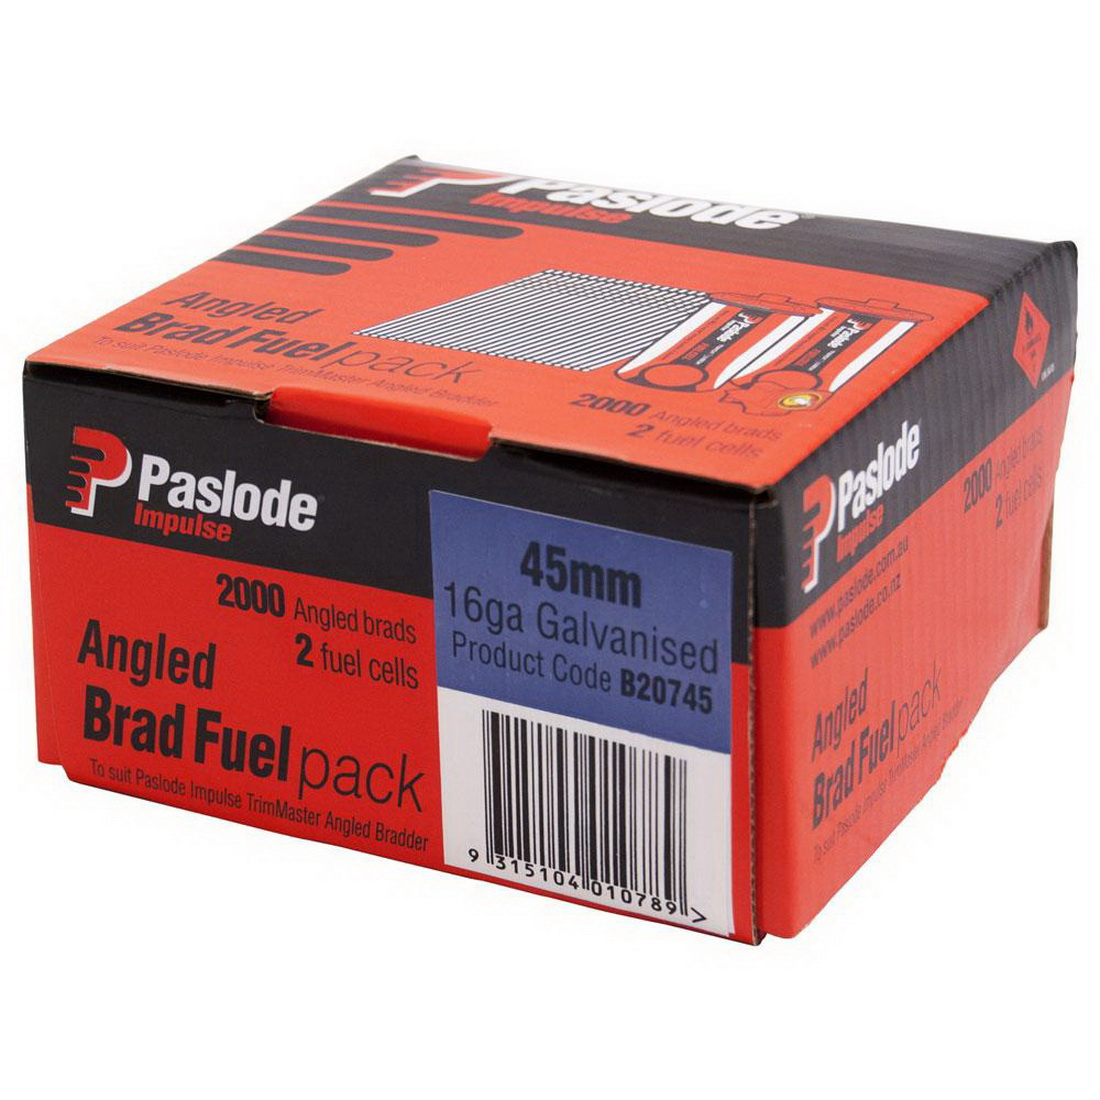 Impulse C Series Angled Brad and 2 Fuel Cells 1.6 x 45mm Zinc Galvanised 2000 pack